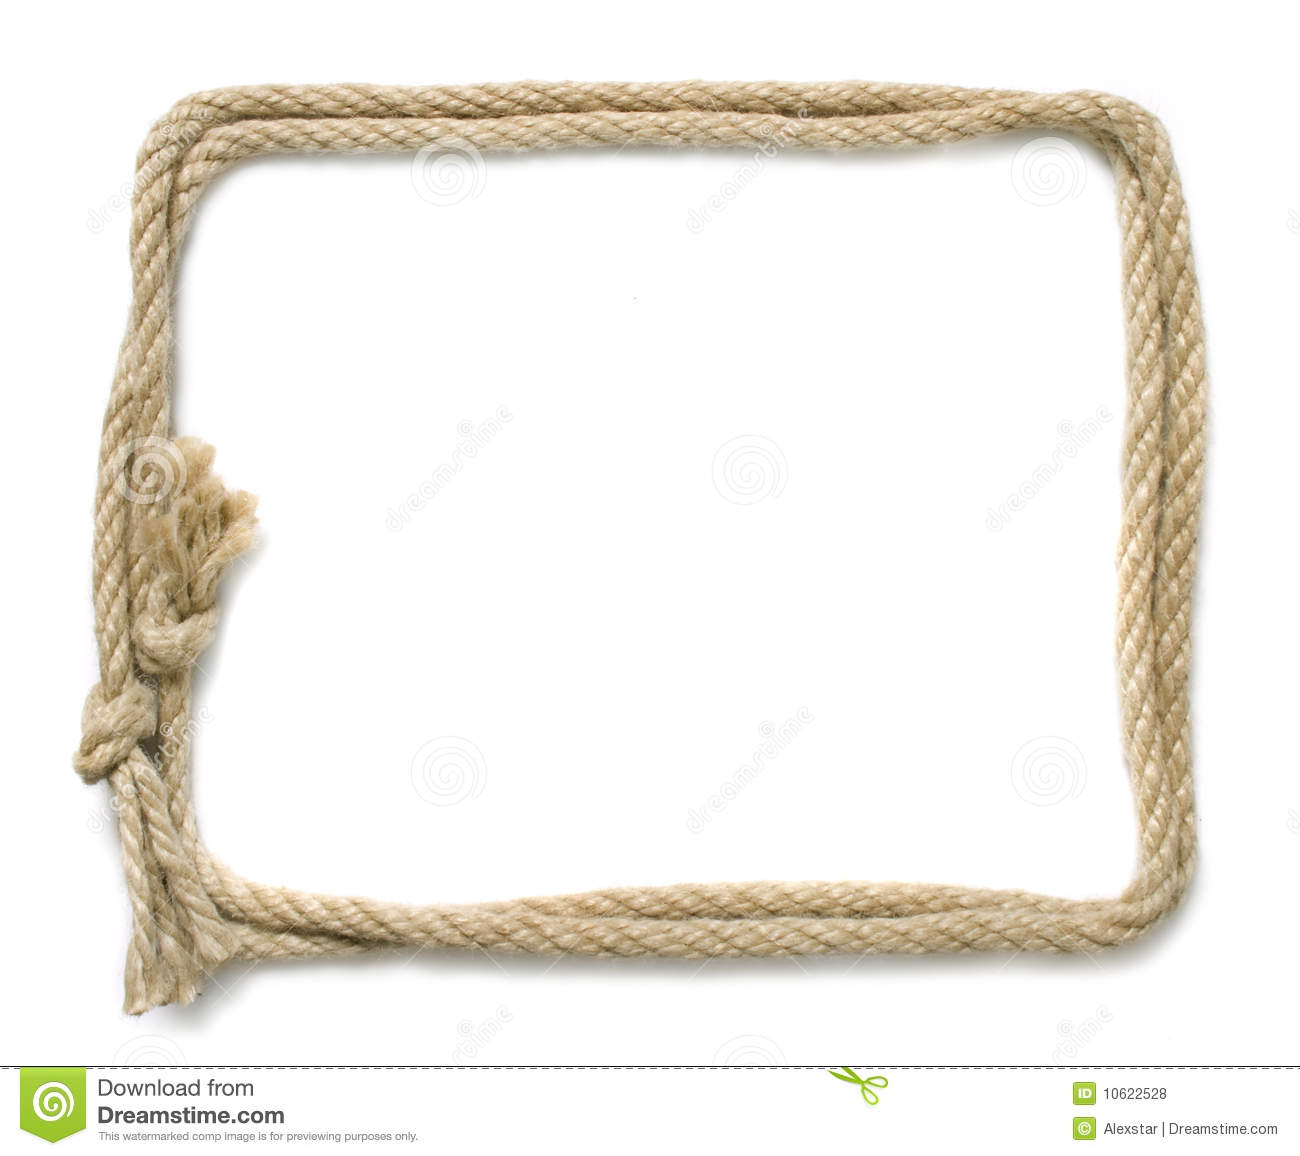 Rope frame royalty free stock photos image 10622528 Rope photo frame